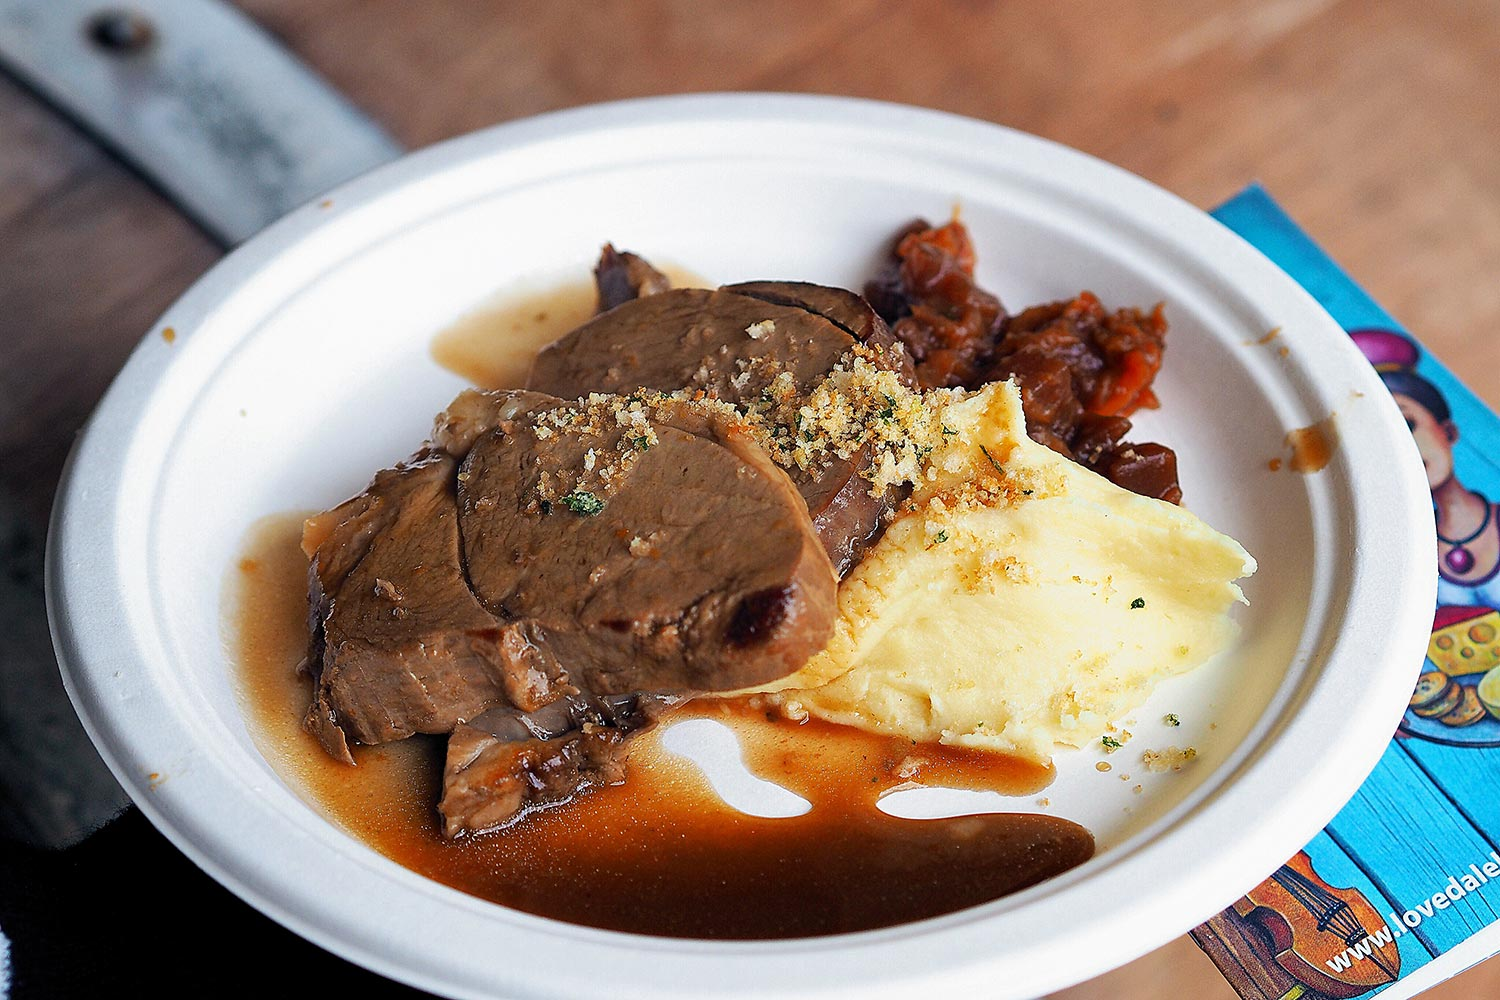 Review of Lovedale Long Lunch: Braised Wagyu Beef with Truffle Mash, Apple, and Beetroot Relish from Saltire Estate Catering